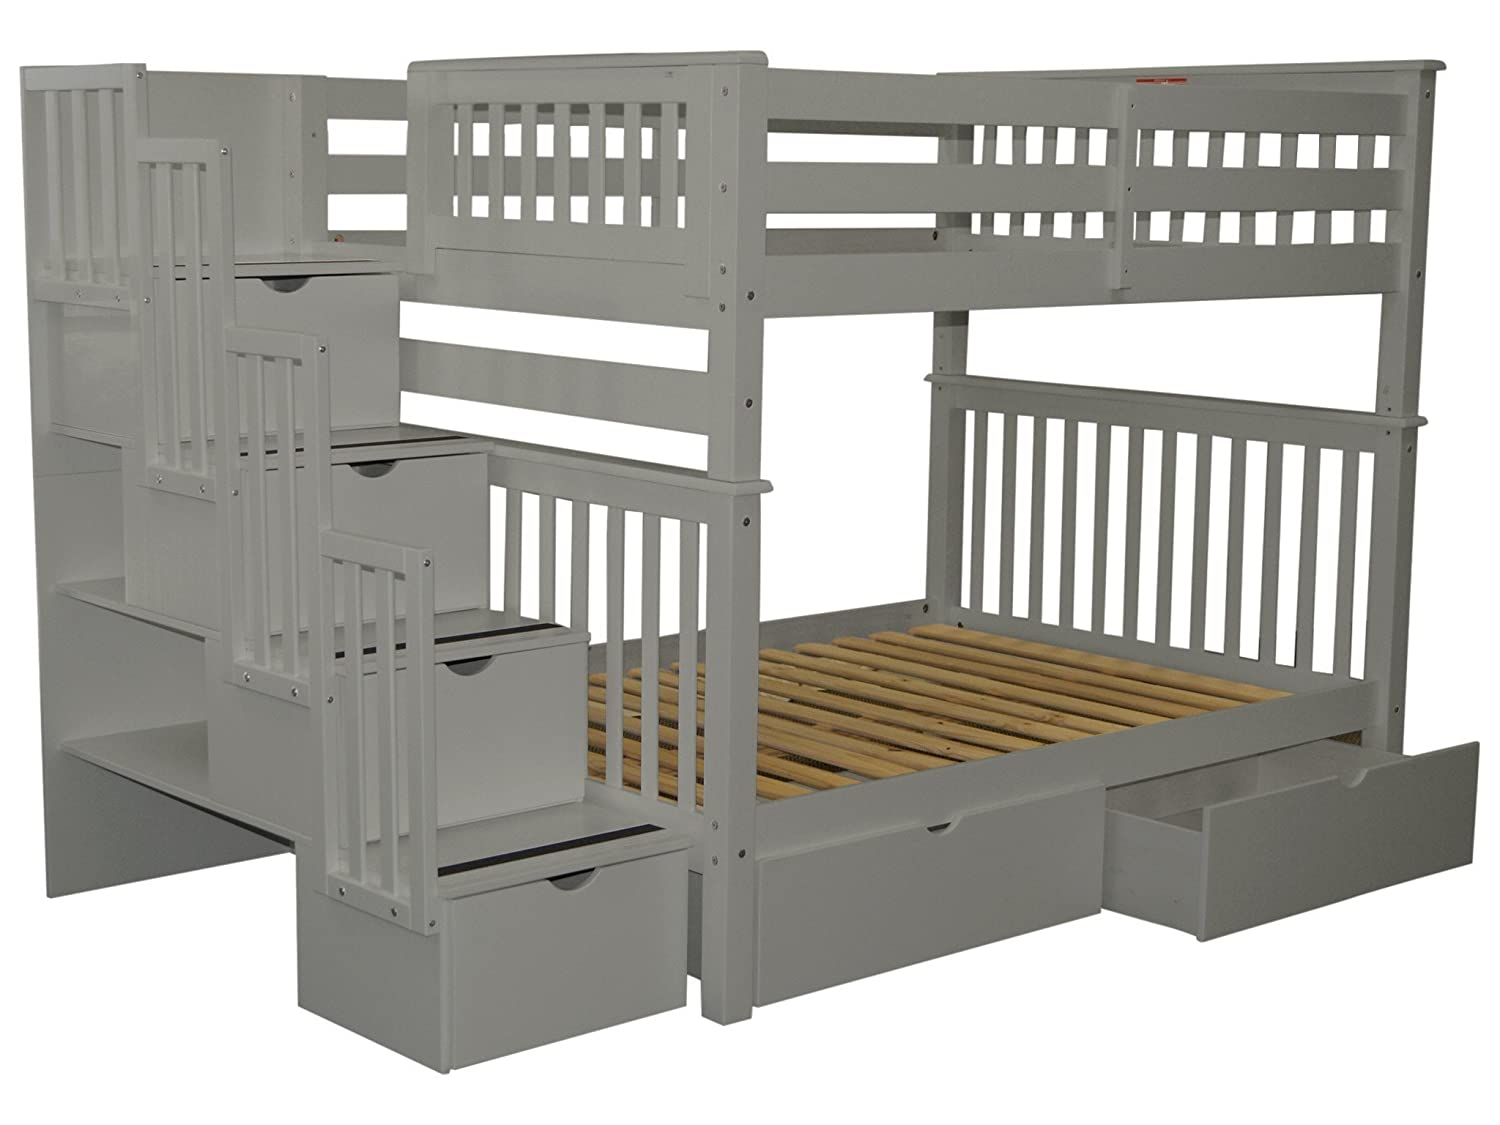 Bedz King Stairway Bunk Beds Full over Full with 4 Drawers in the Steps and 2 Under Bed Drawers, Gray